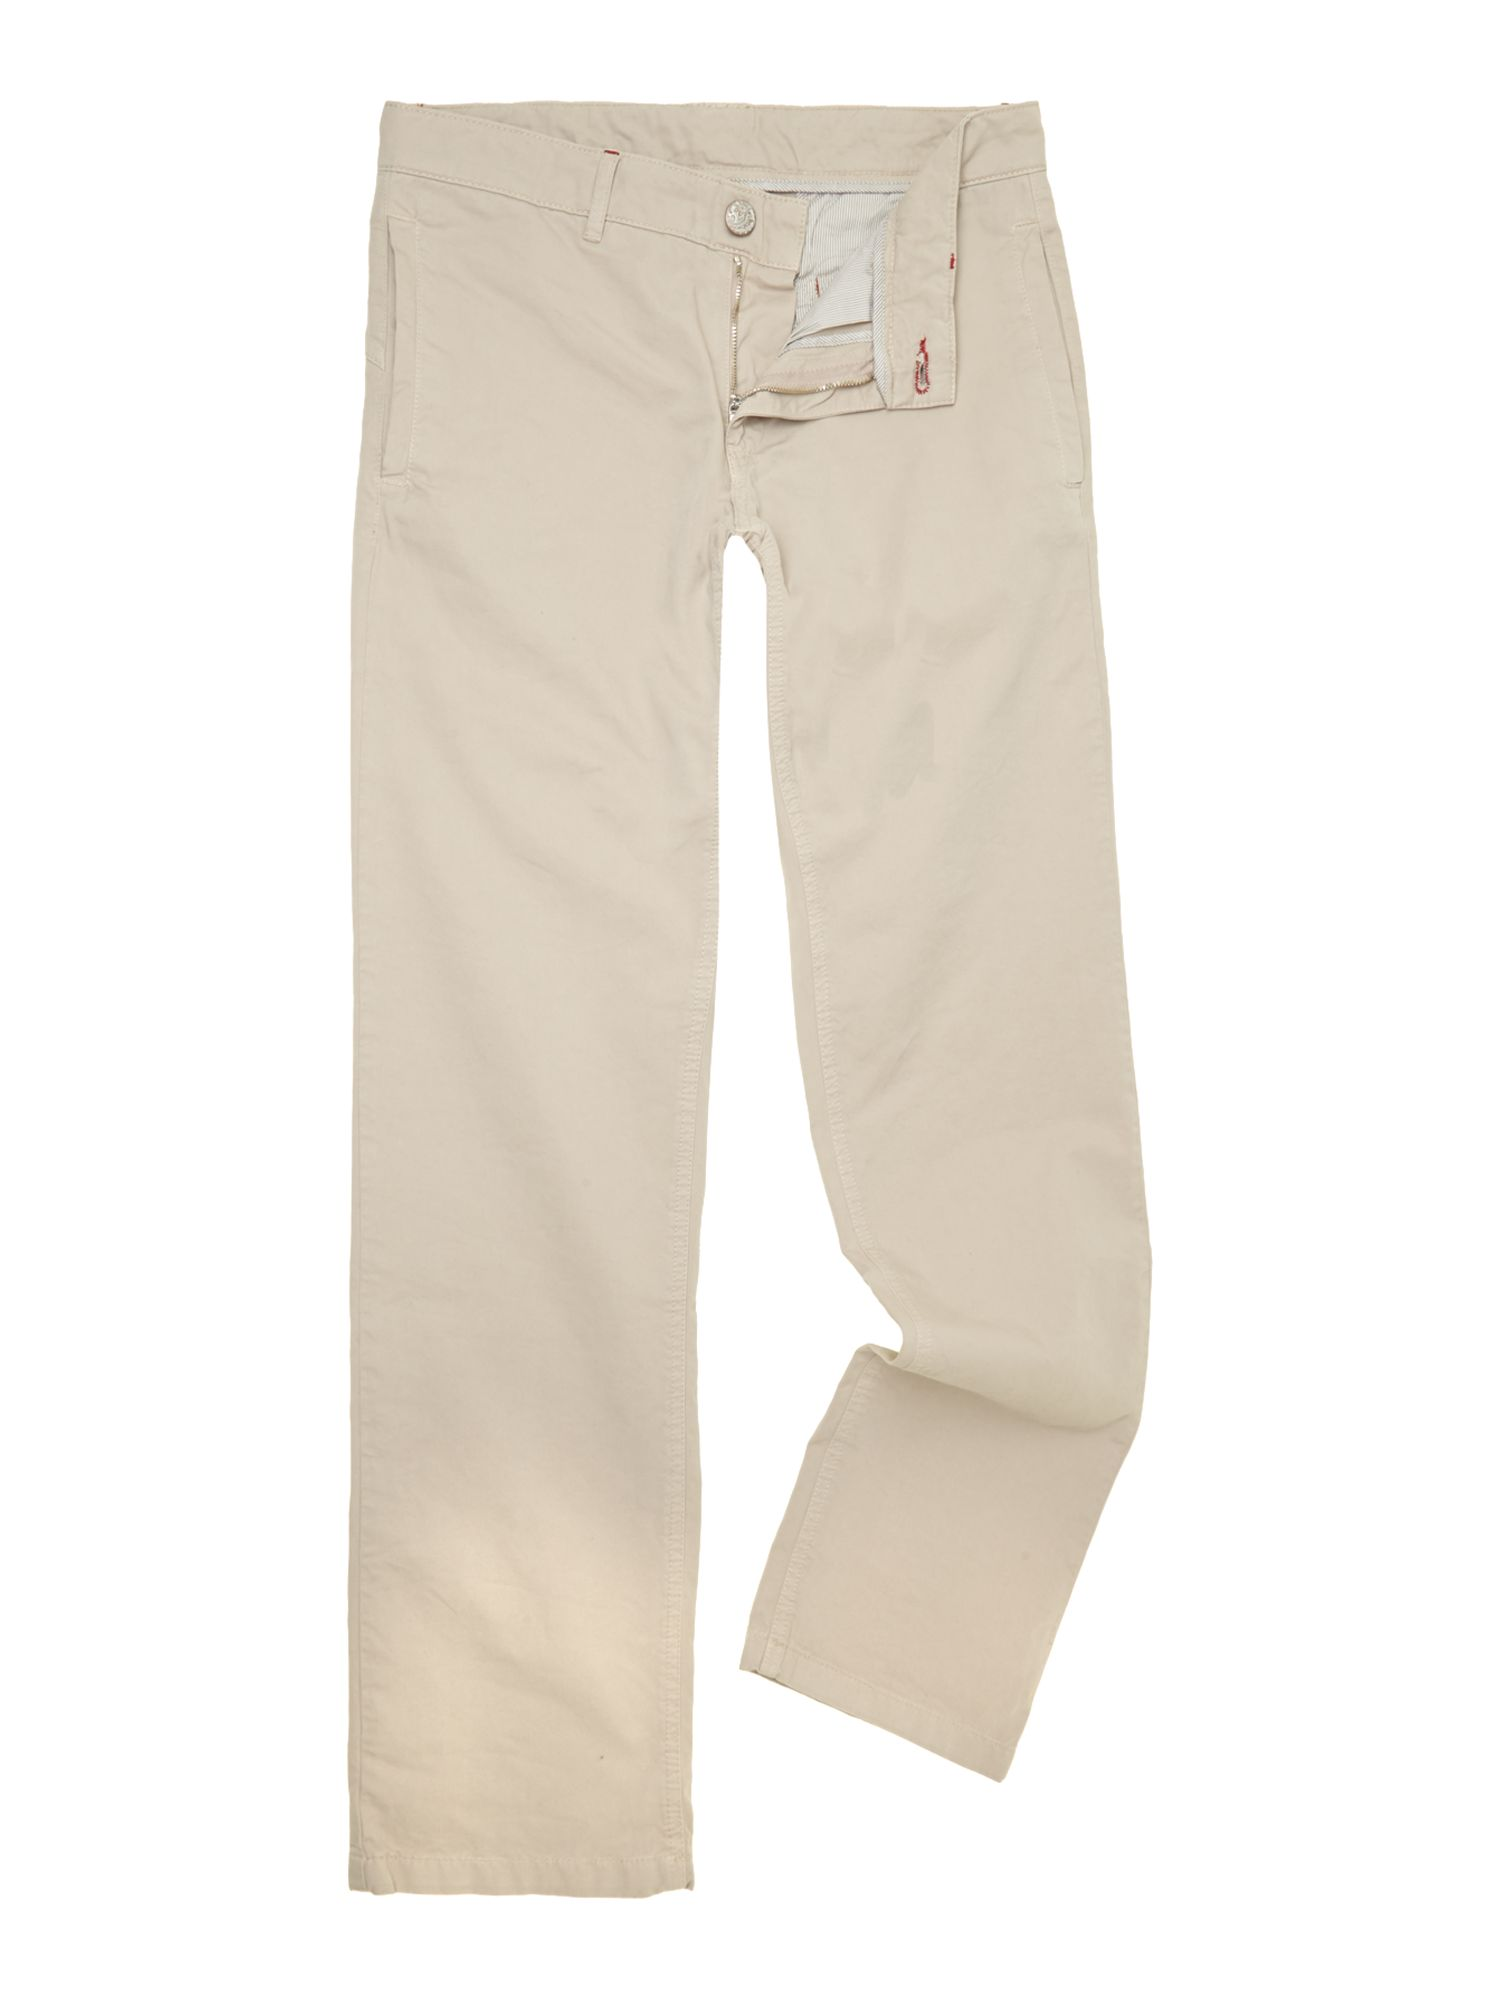 Maygrove cotton chinos